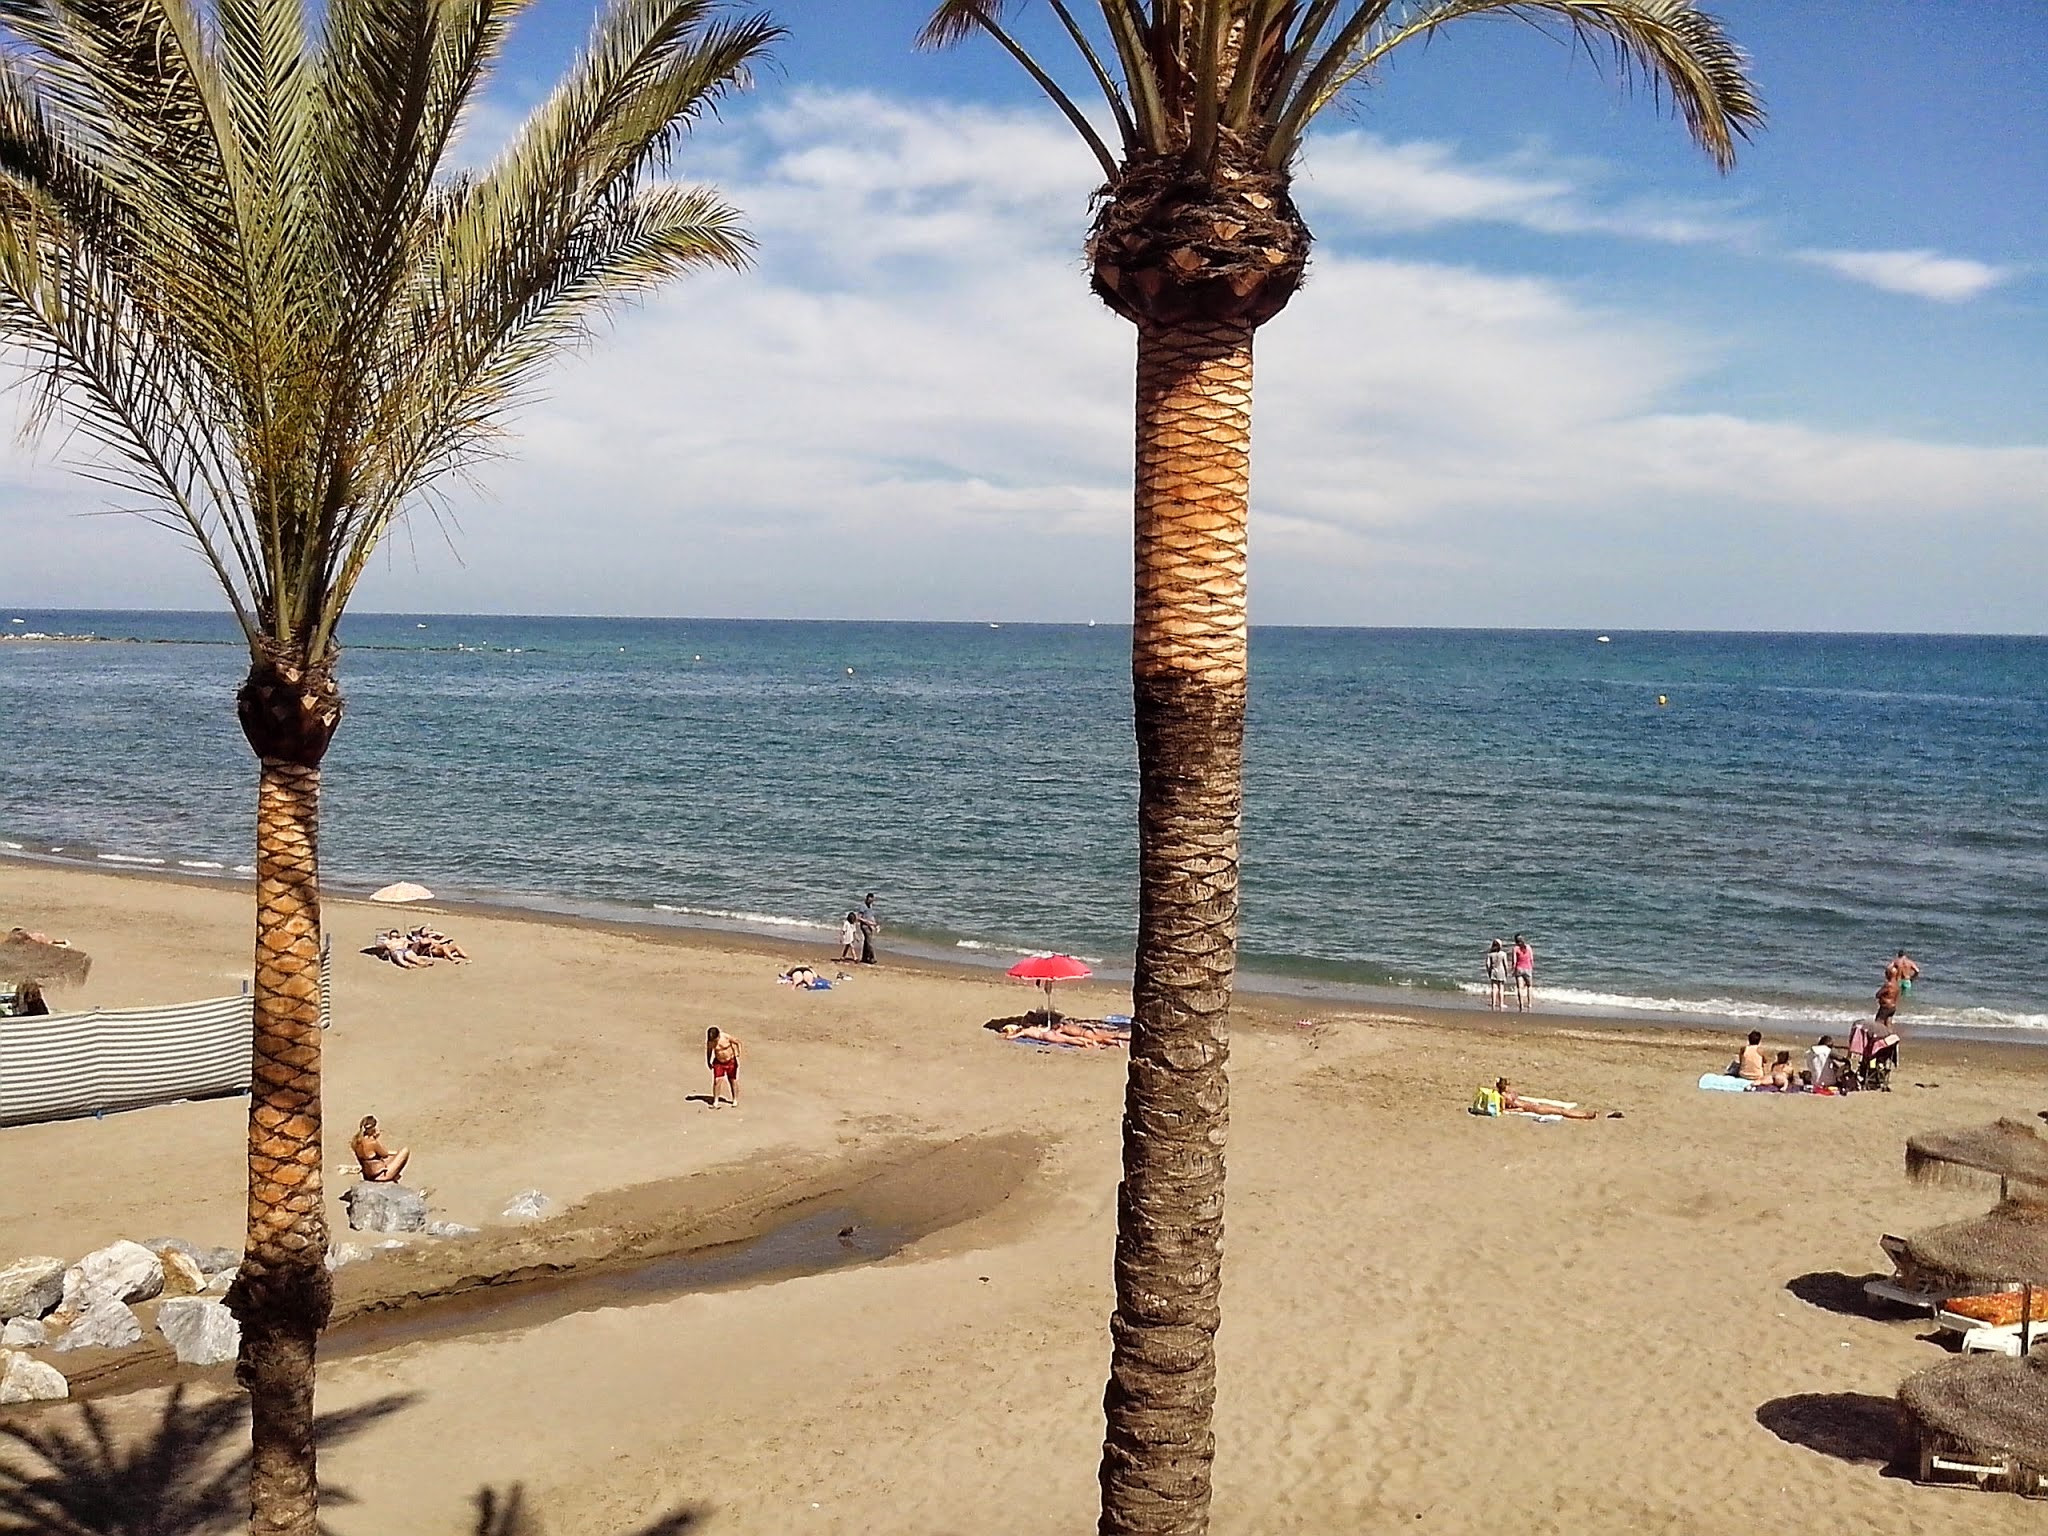 Costa del Sol cycling is a fun way to see this dynamic place